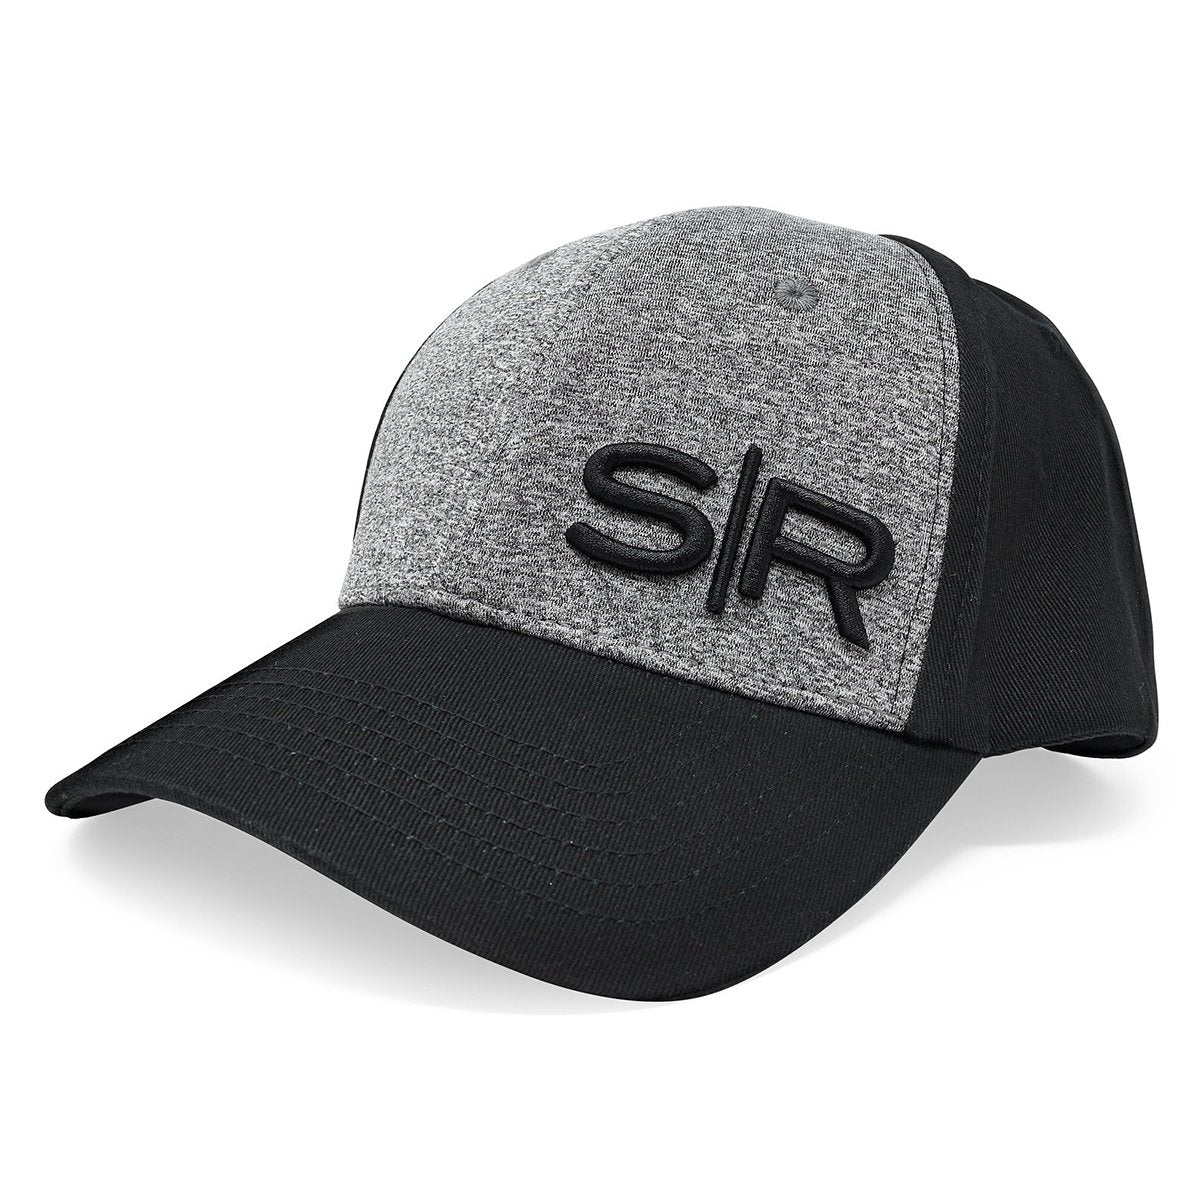 Dual-Tone Hat - Black Icon